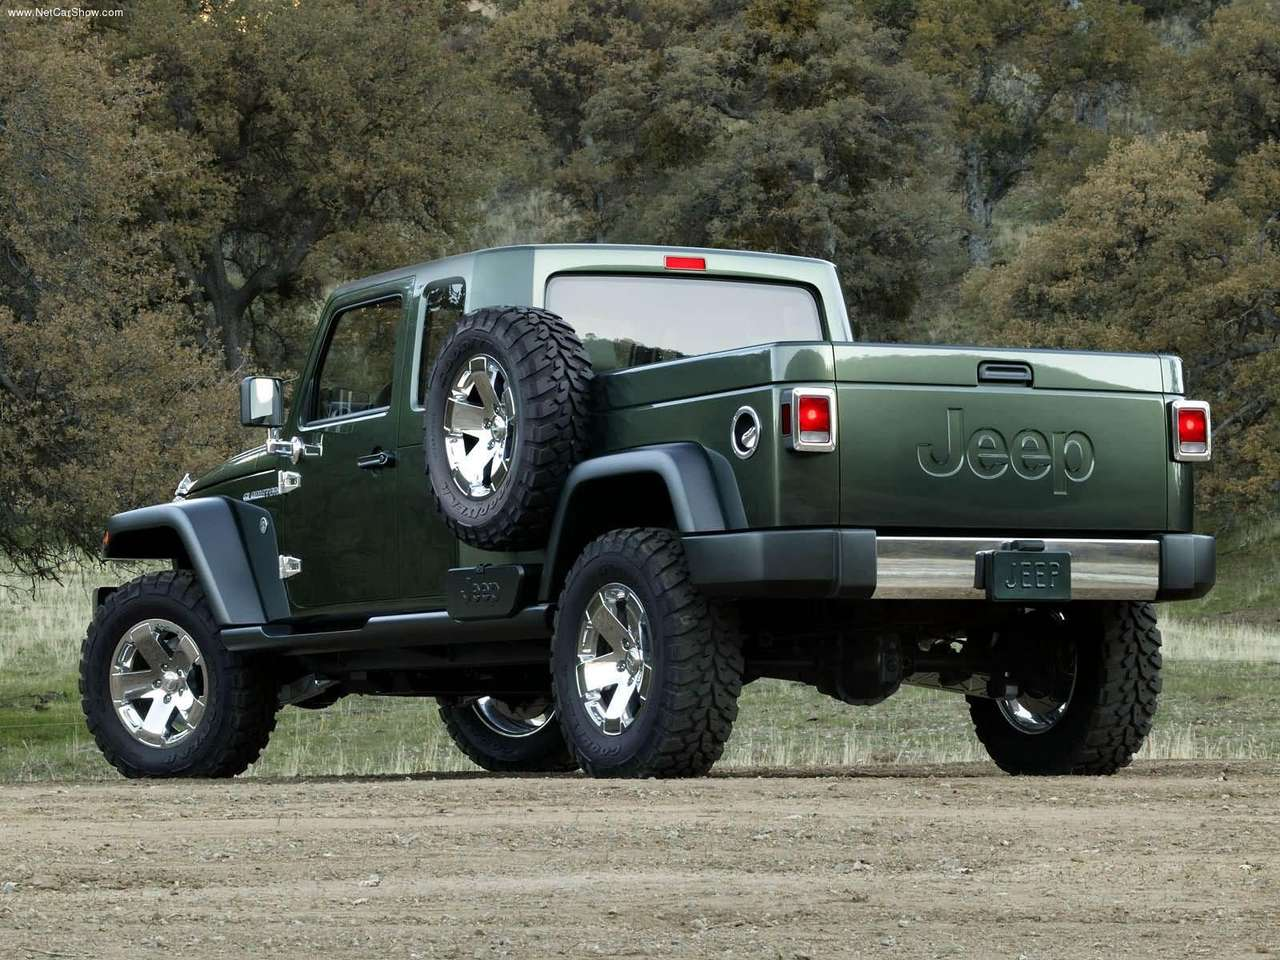 Jeep Gladiator Concept Wallpaper For Free Download